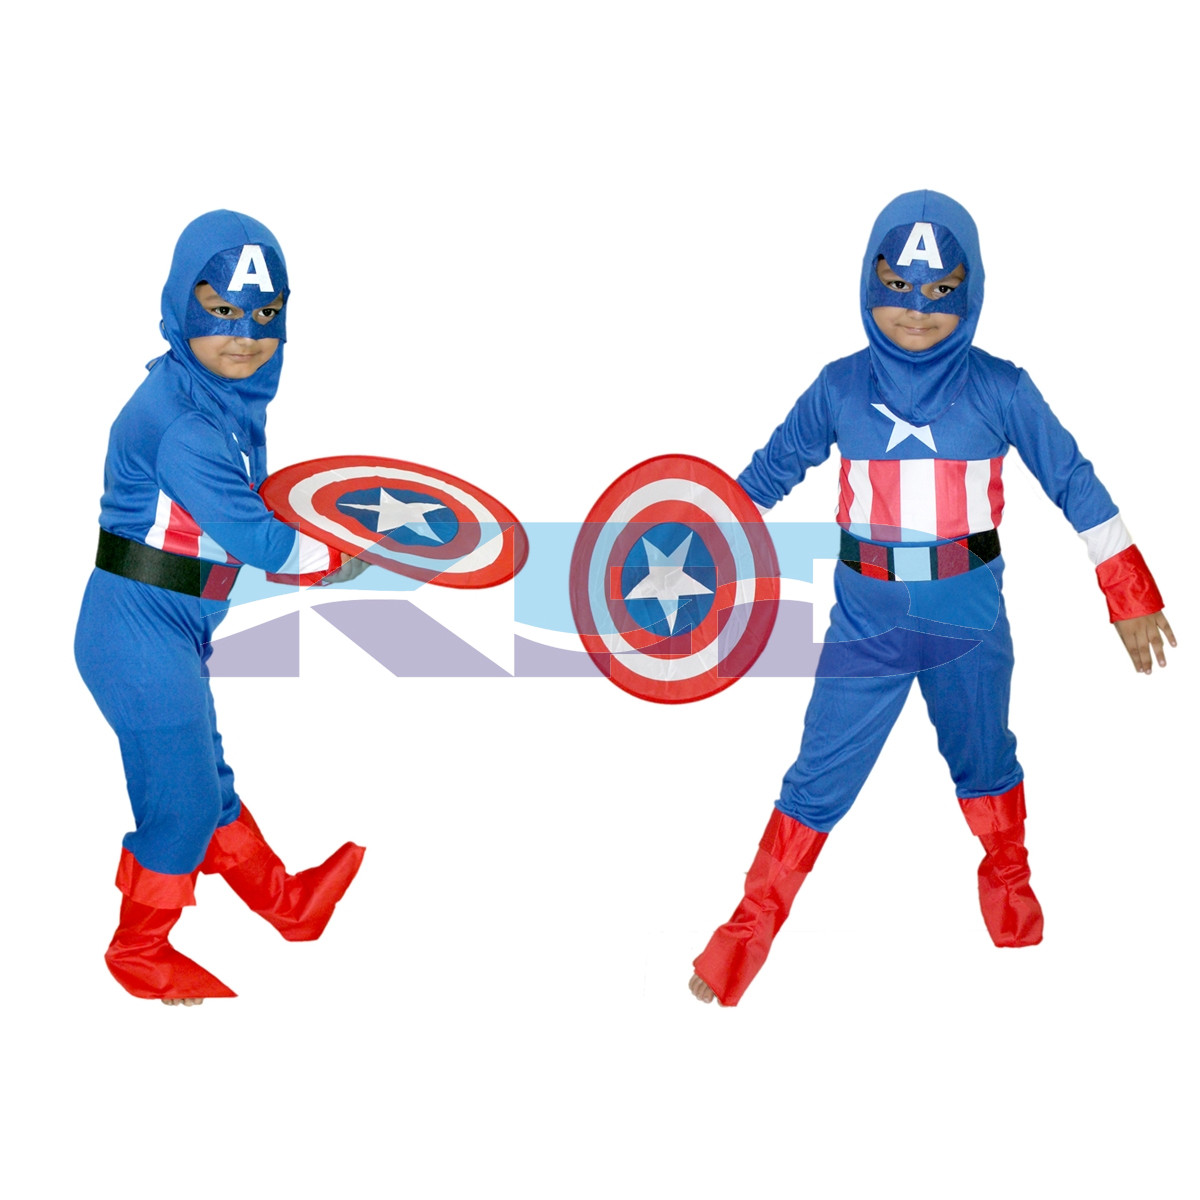 Captain America brave Little Soldier Super Hero Cosplay Costume for kids 3 to 8 years